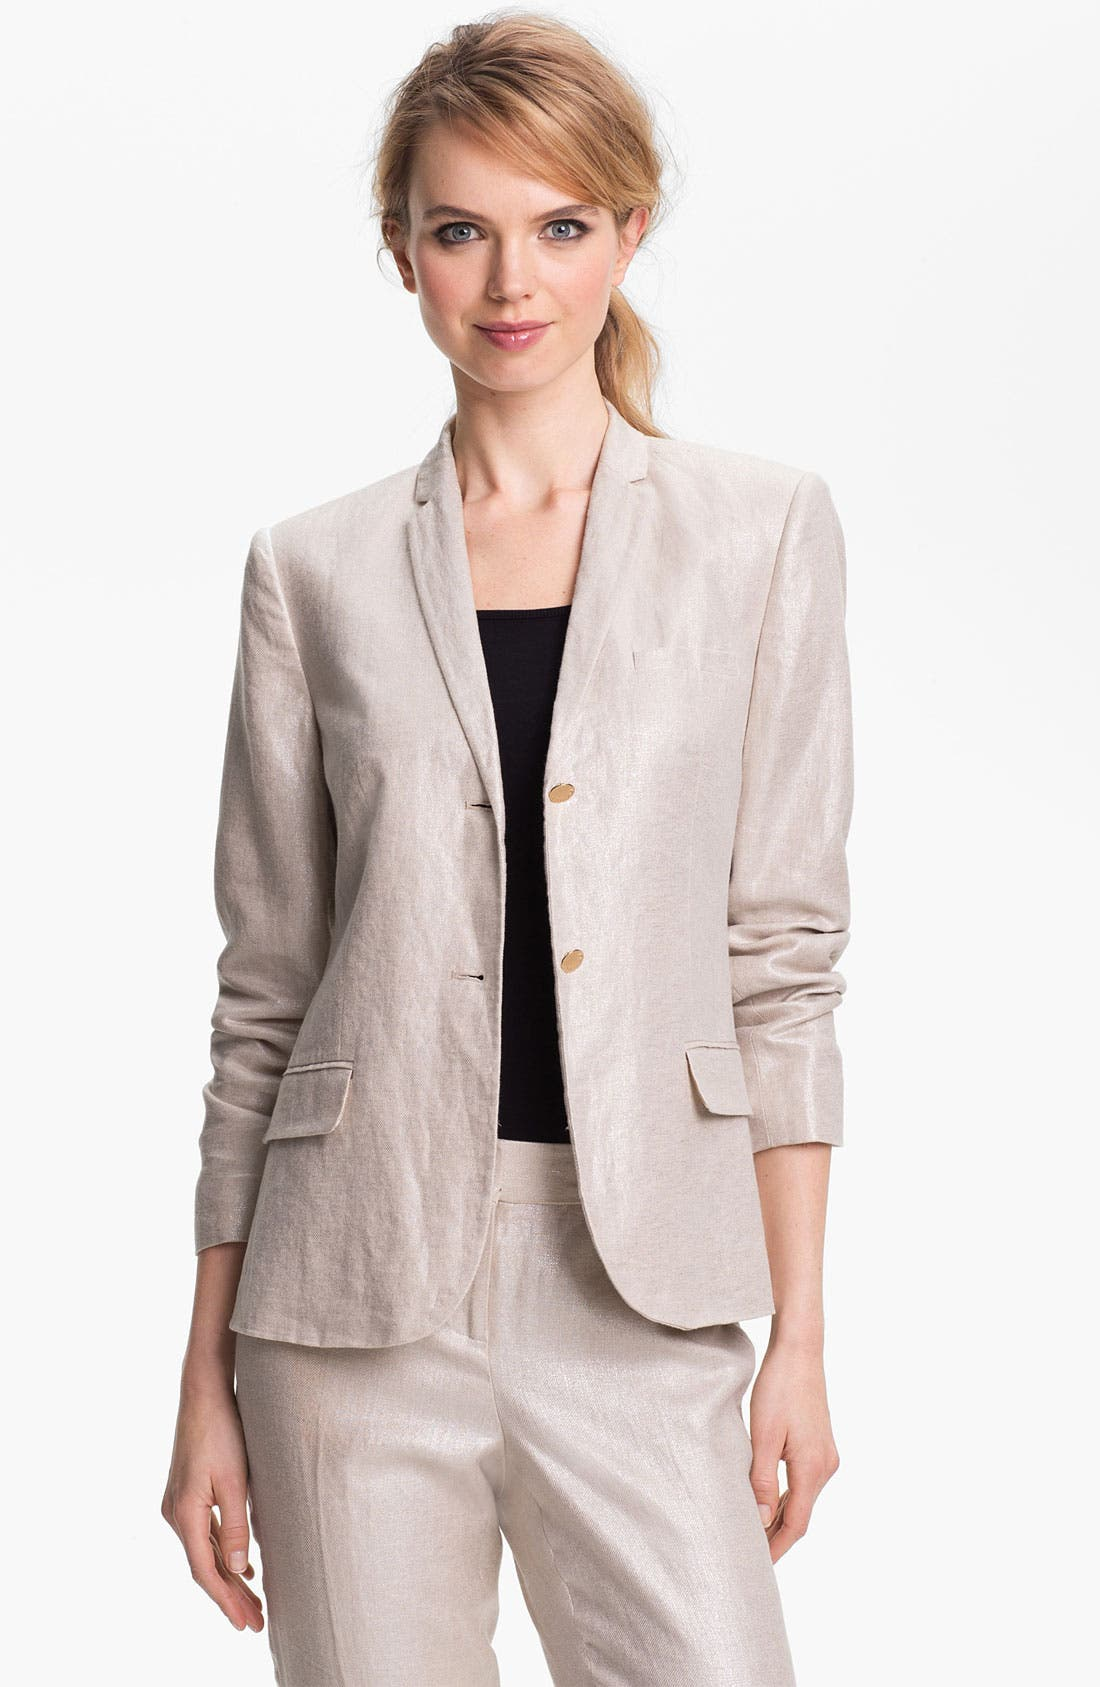 Alternate Image 1 Selected - Vince Camuto Two Button Foiled Linen Blazer (Petite)